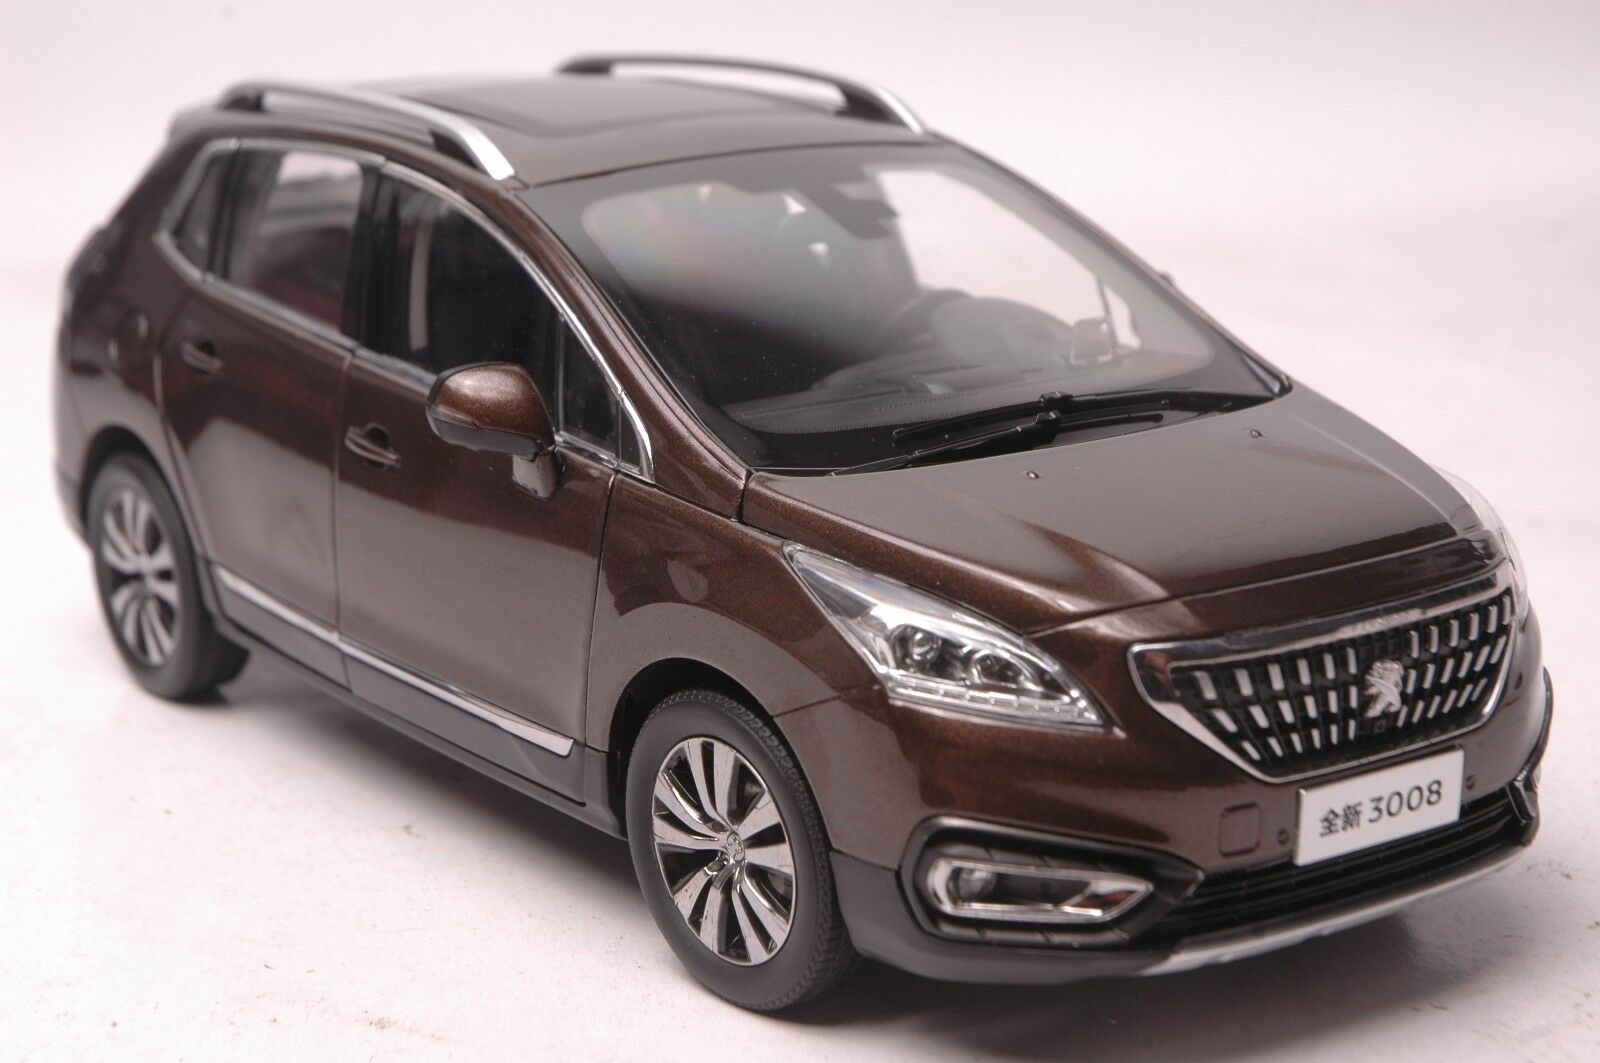 Peugeot 3008 2016 SUV model in scale 1 18 brown